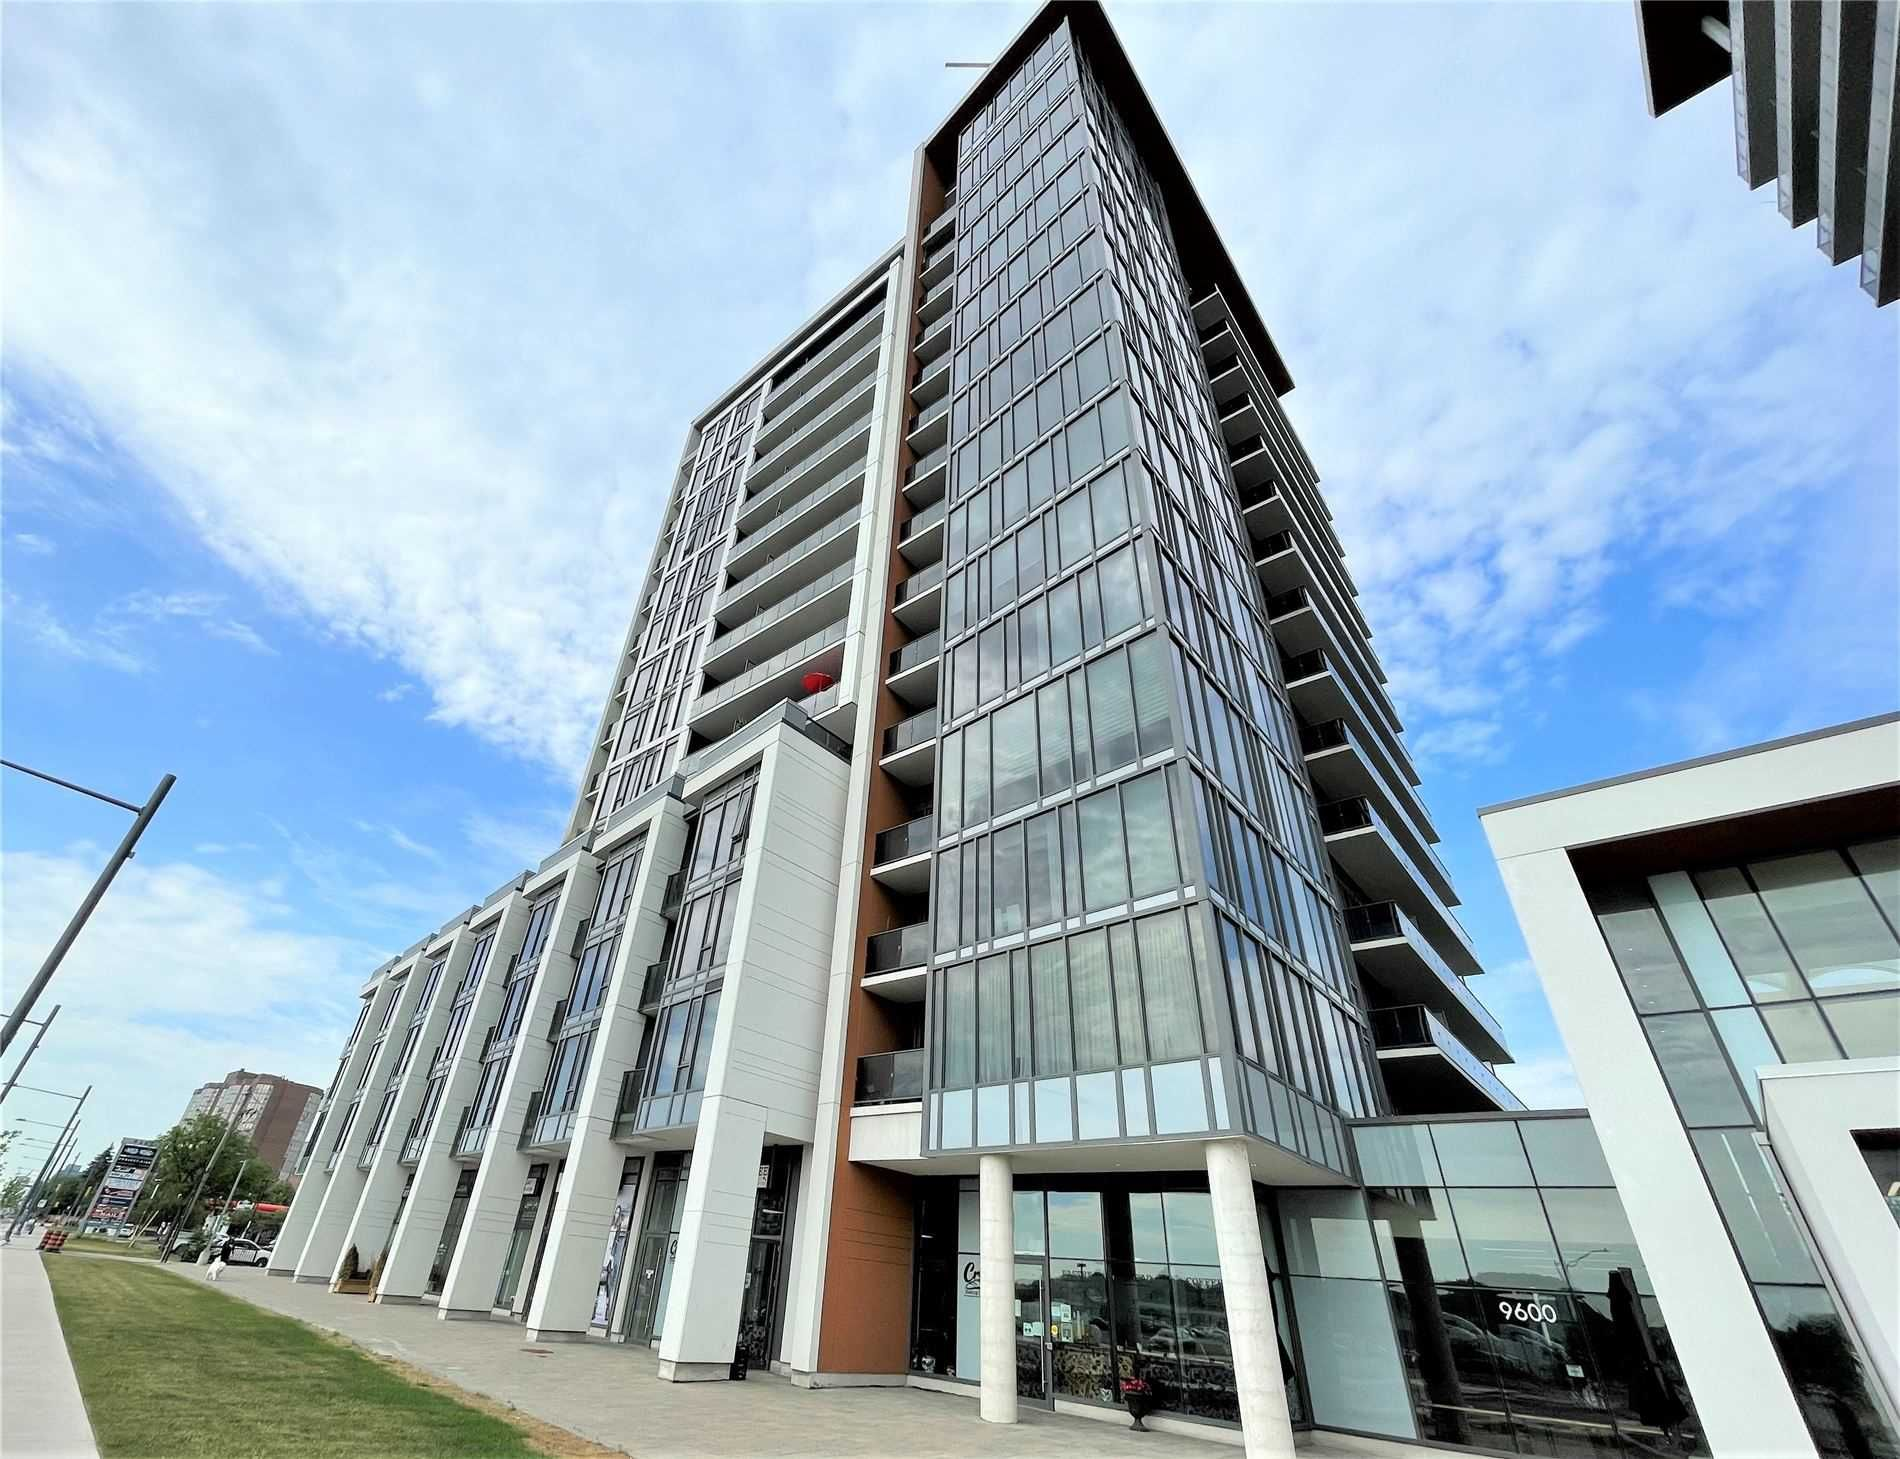 9600 Yonge St, unit 810B for sale in Toronto - image #2